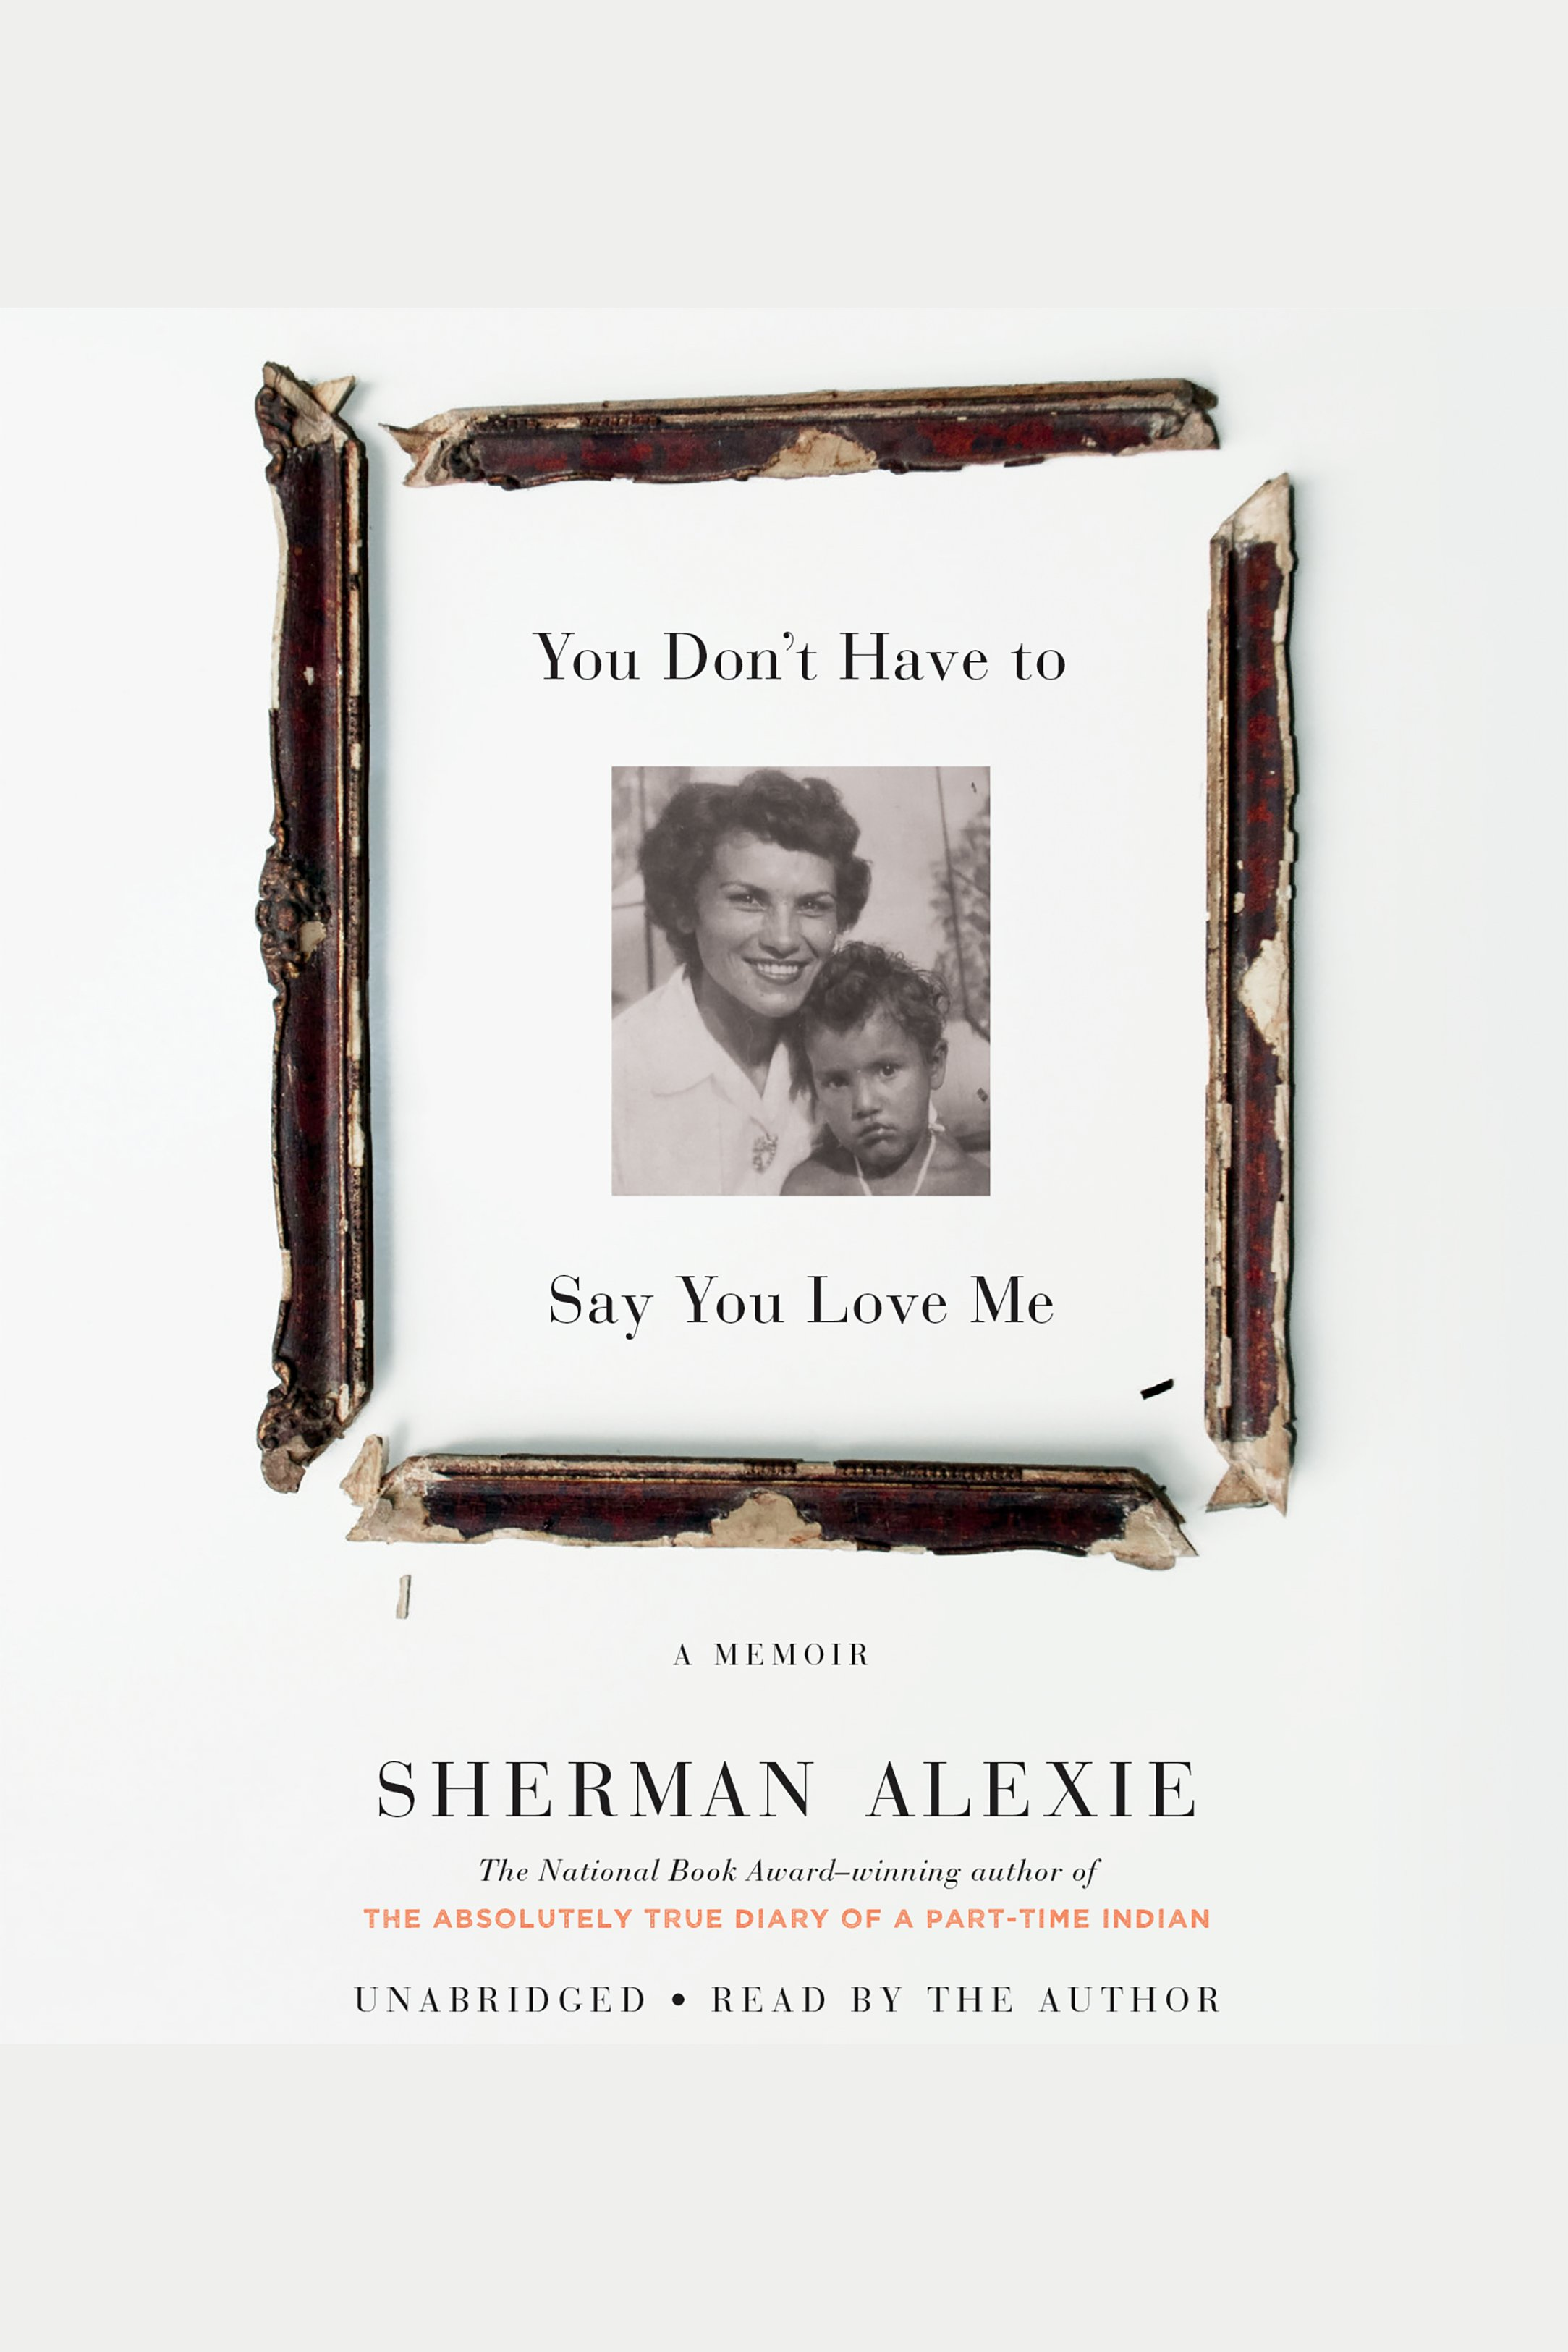 You Don't Have to Say You Love Me [EAUDIOBOOK] A Memoir